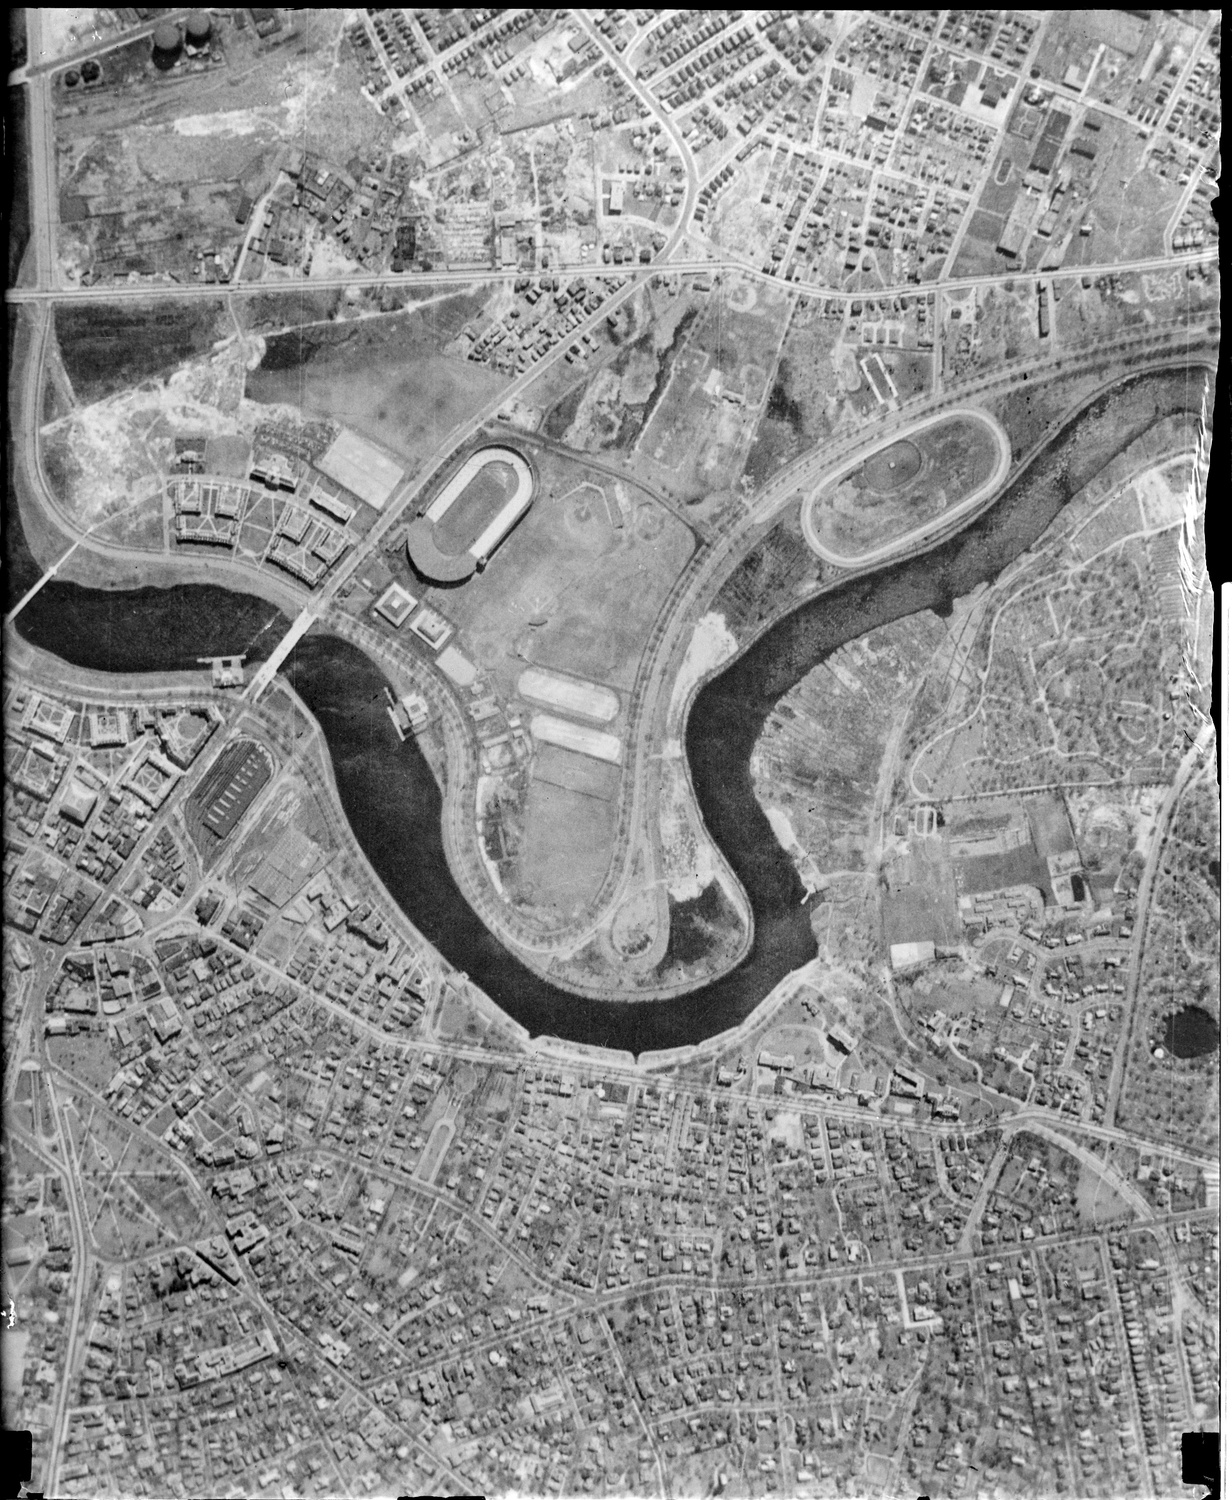 A bird's-eye view of Allston taken before World War II with Harvard Stadium and the Business School visible. Much of the low-lying Allston area had yet to be developed by Harvard which were open fields or small developments.